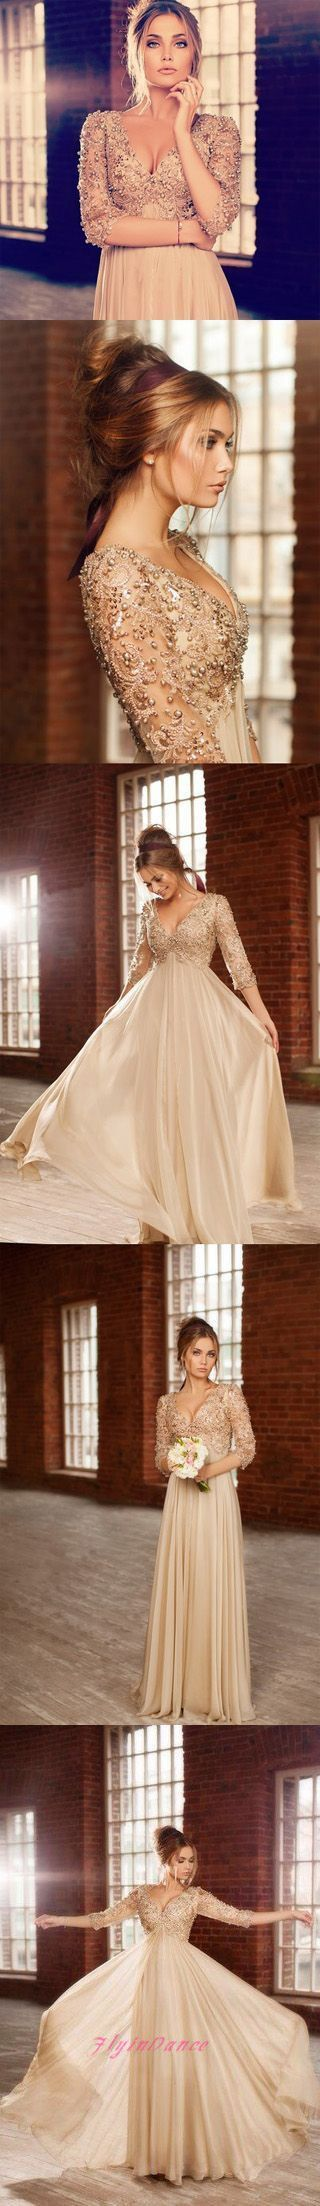 Chiffon Prom Dresses Vintage Champagne V neckline Prom Dress With Beading Half Sleeves Evening Gown